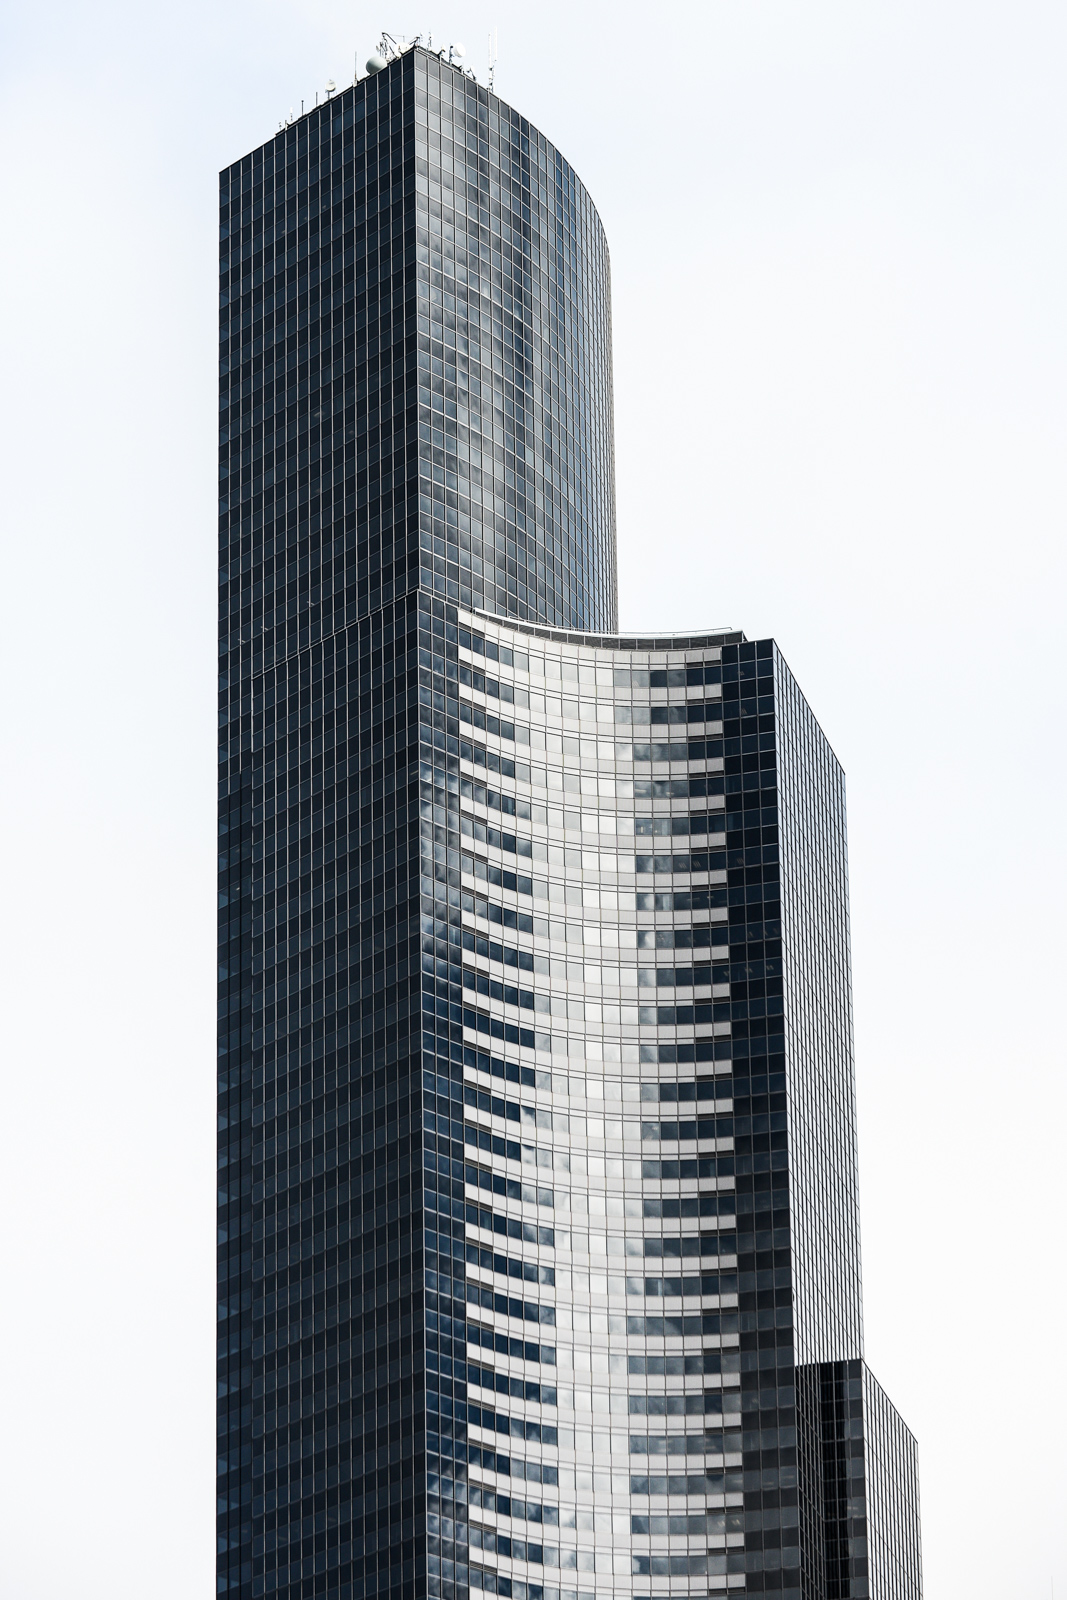 #1 Columbia Tower: 933 feet tall, built in 1985. (Photo: Chona Kasinger / Seattle Refined)